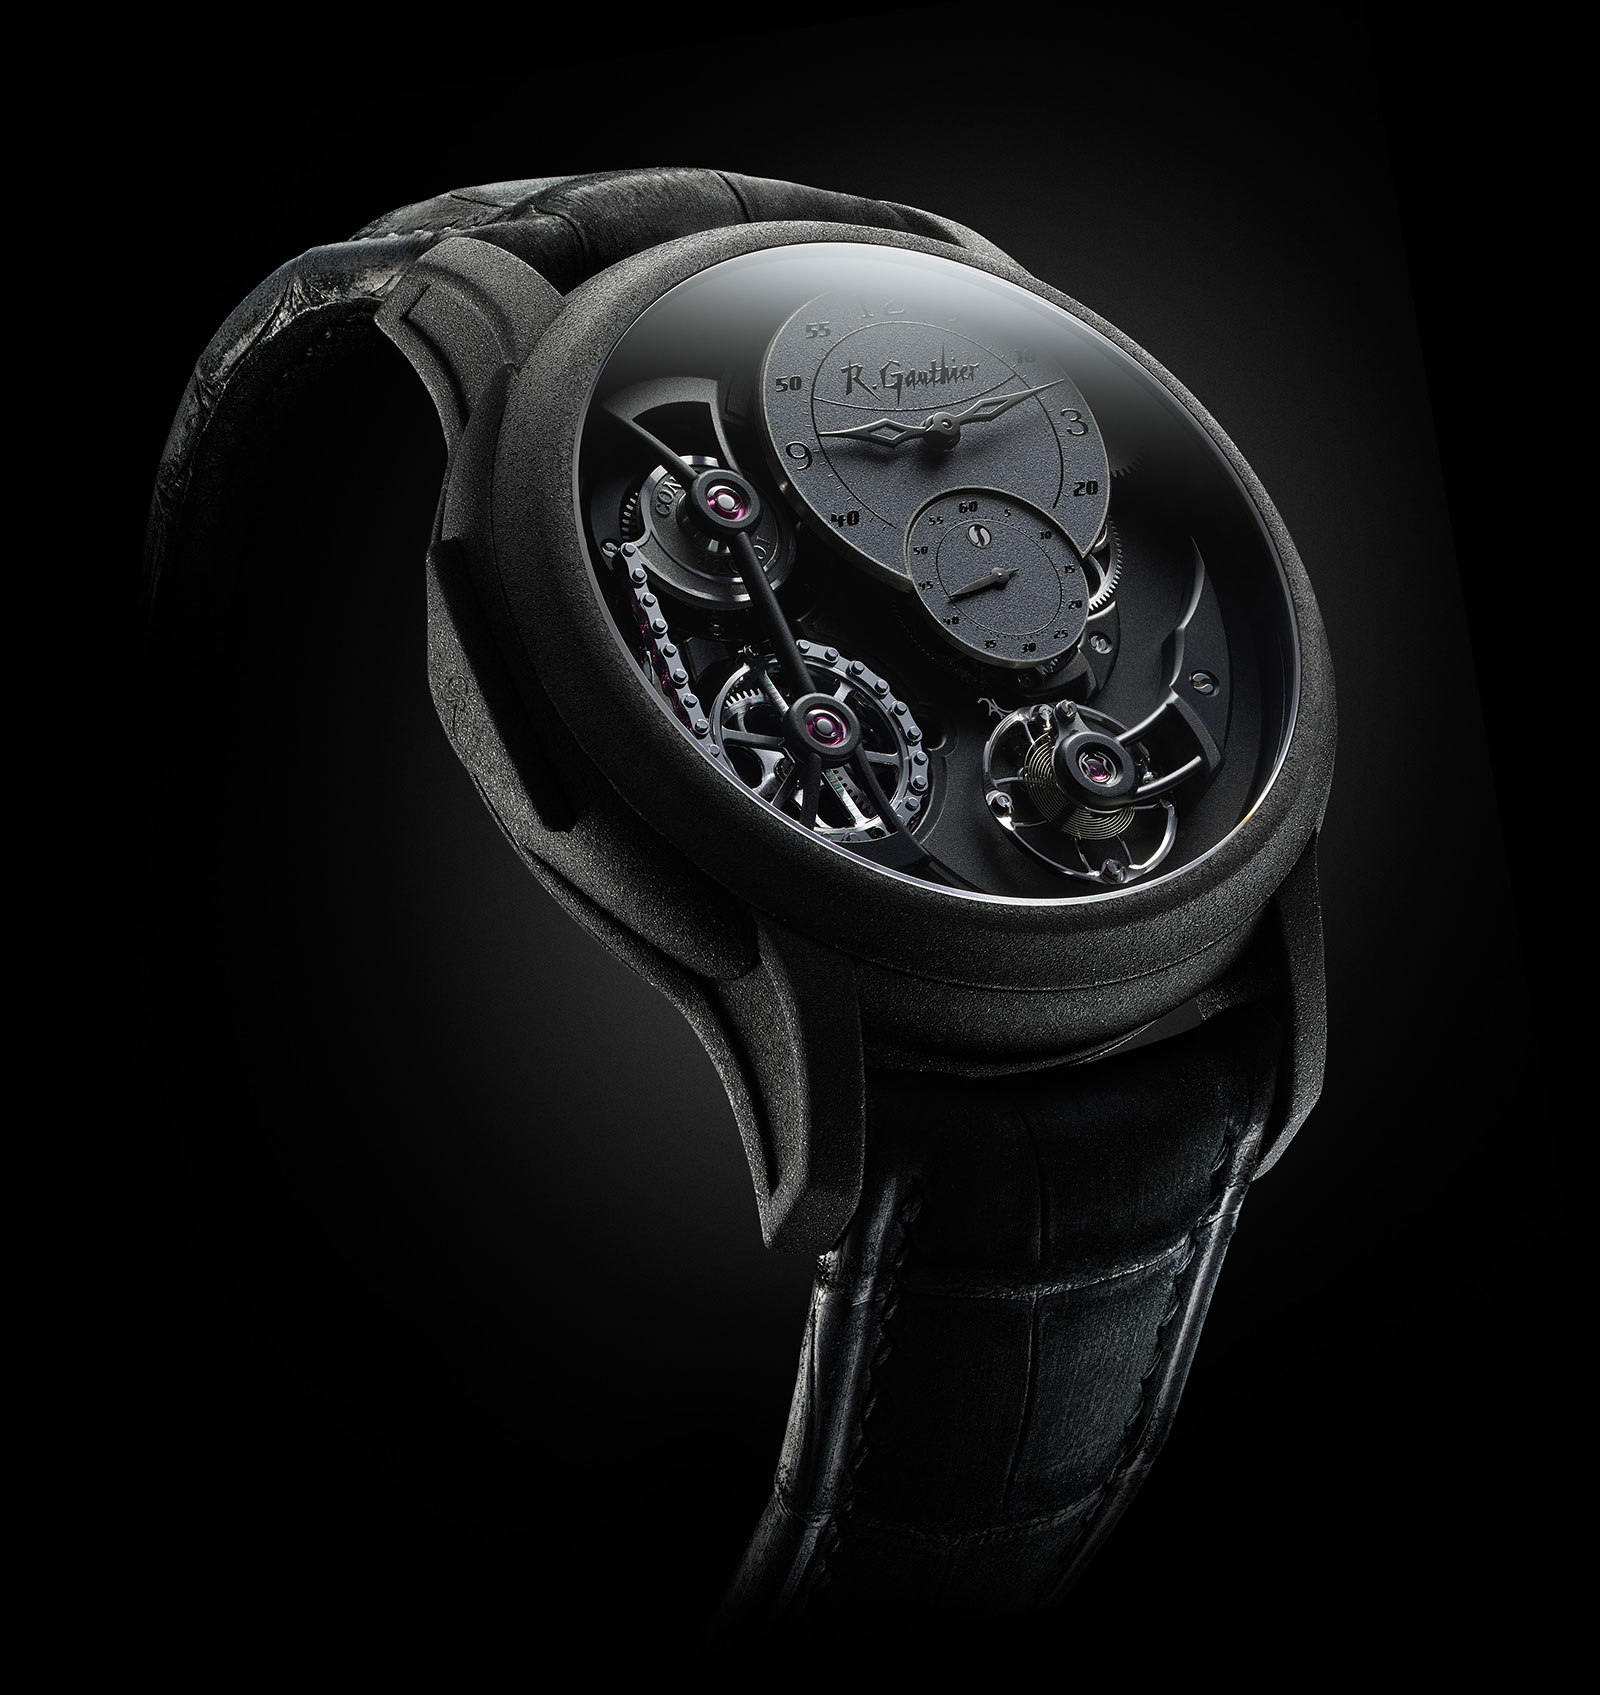 Romain Gauthier Logical One Enraged 1